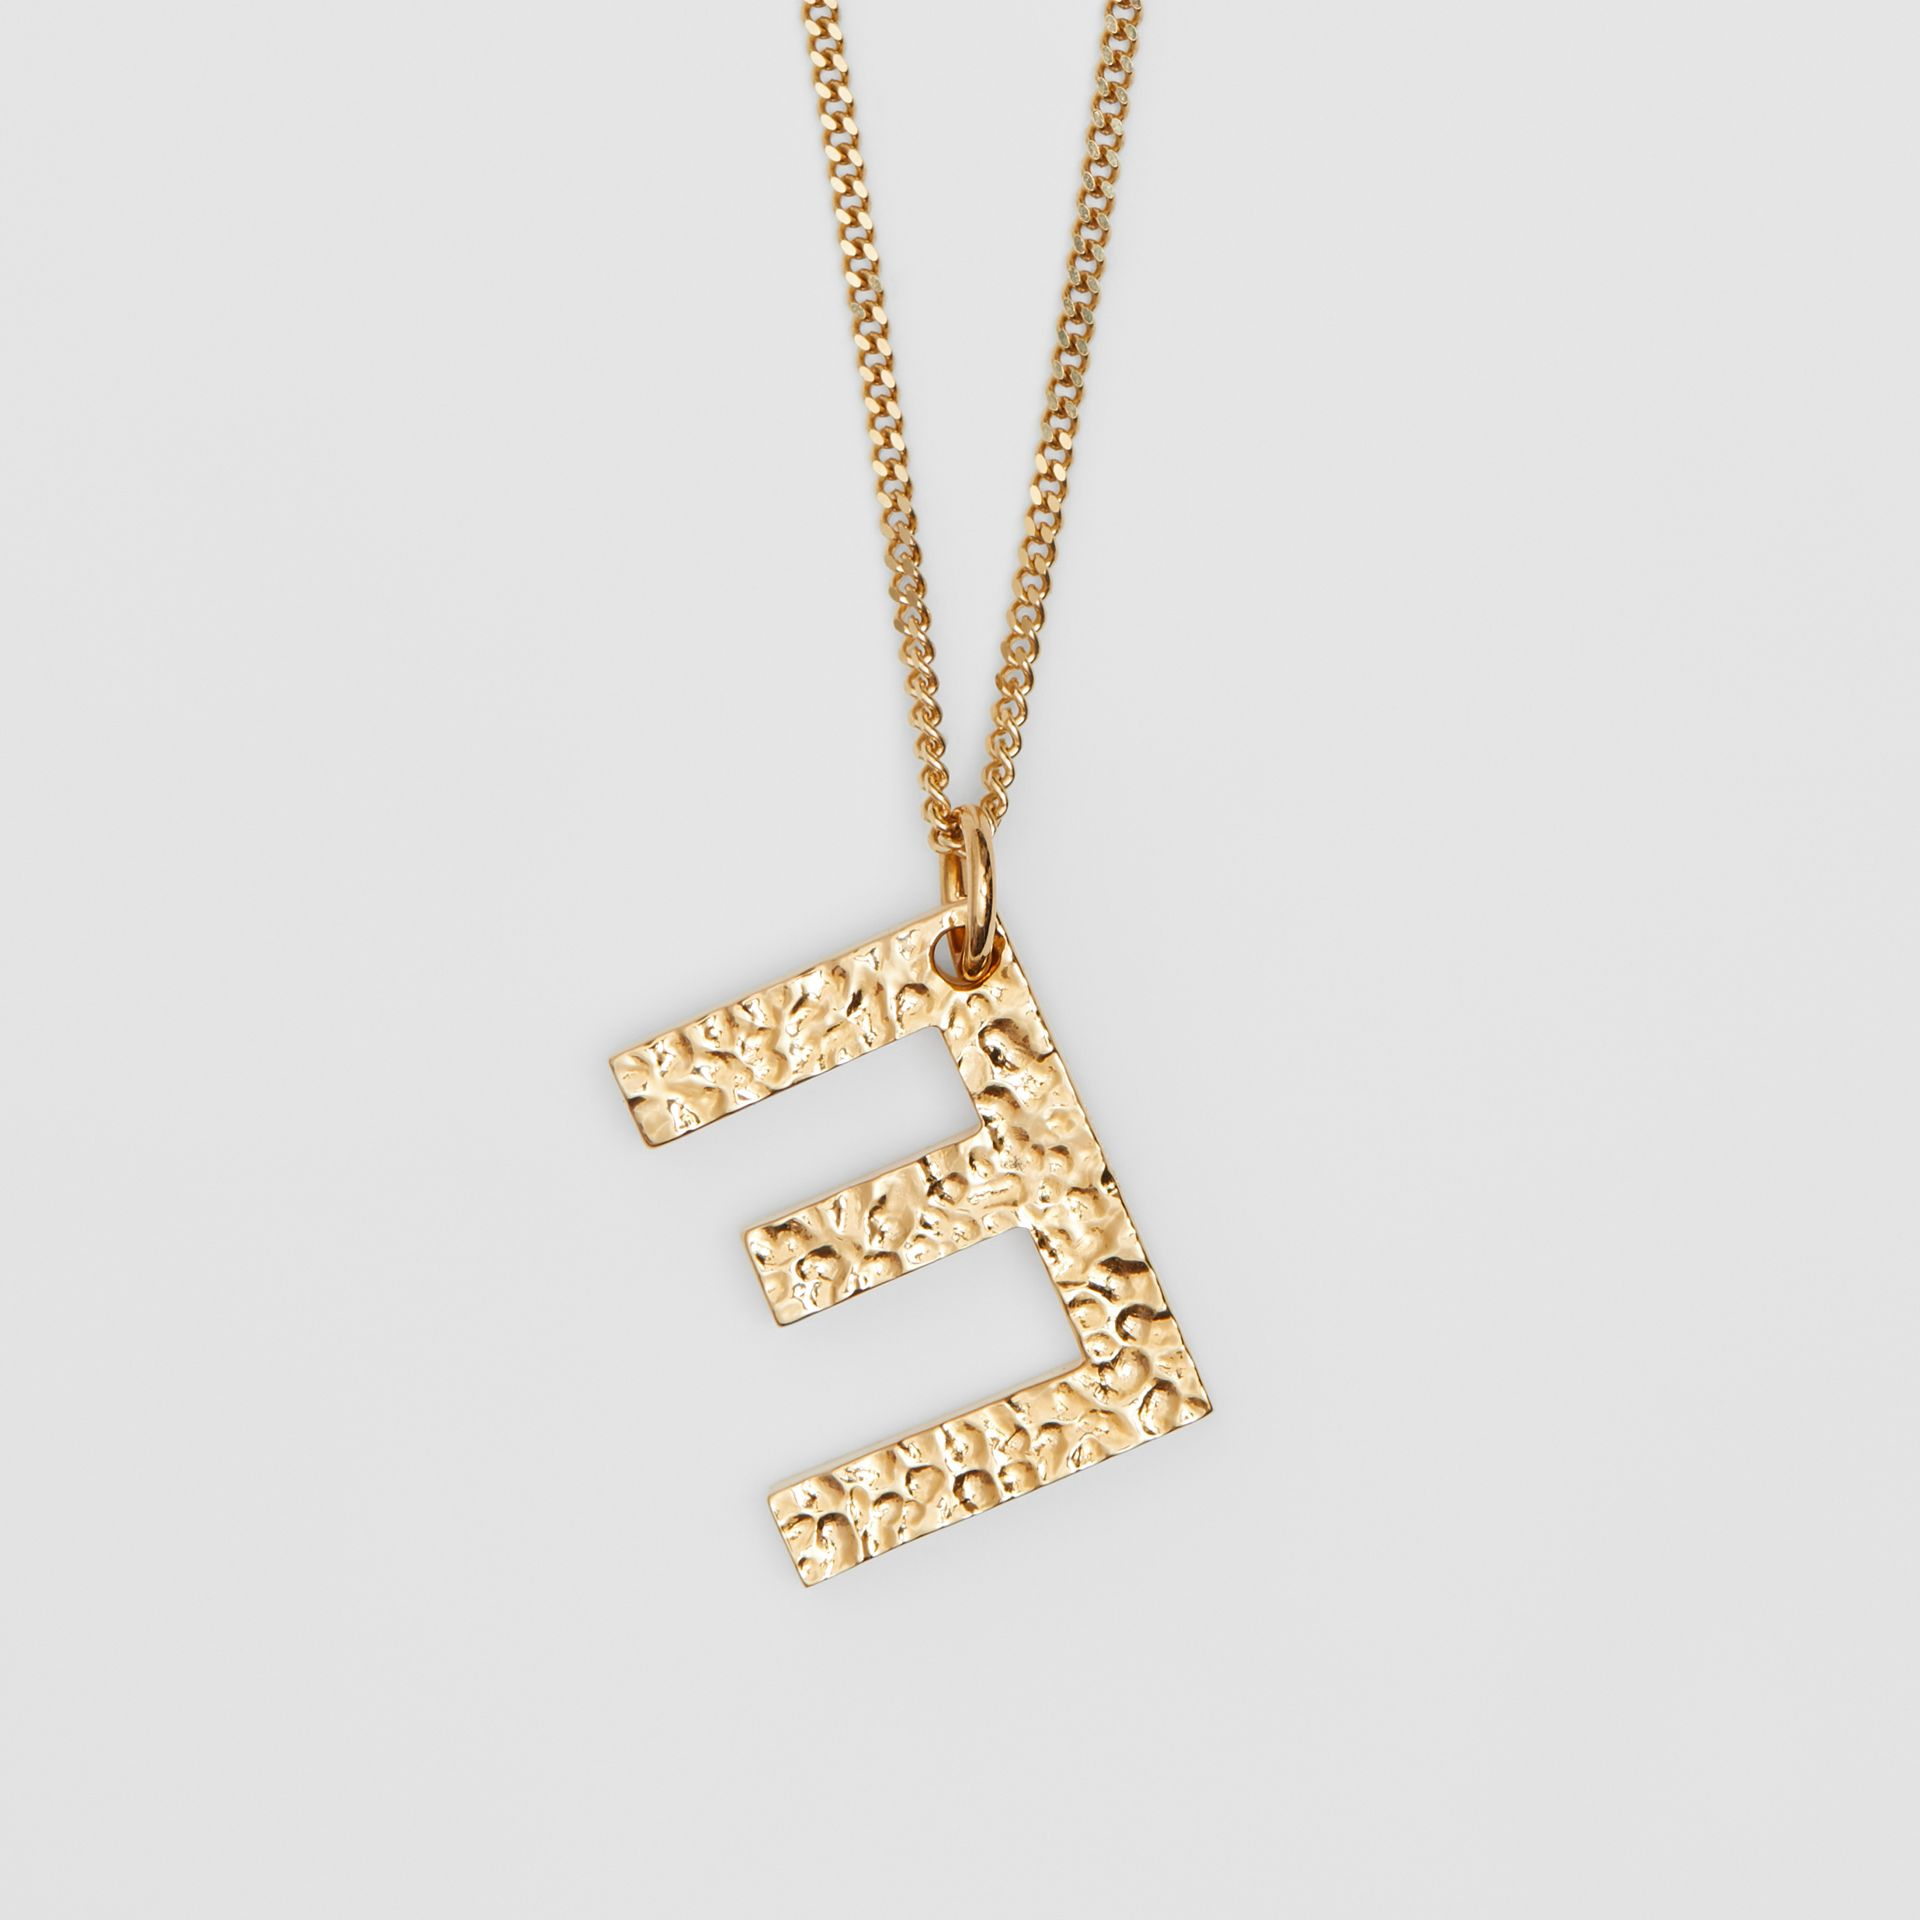 'E' Alphabet Charm Gold-plated Necklace in Light - Women | Burberry United Kingdom - gallery image 2